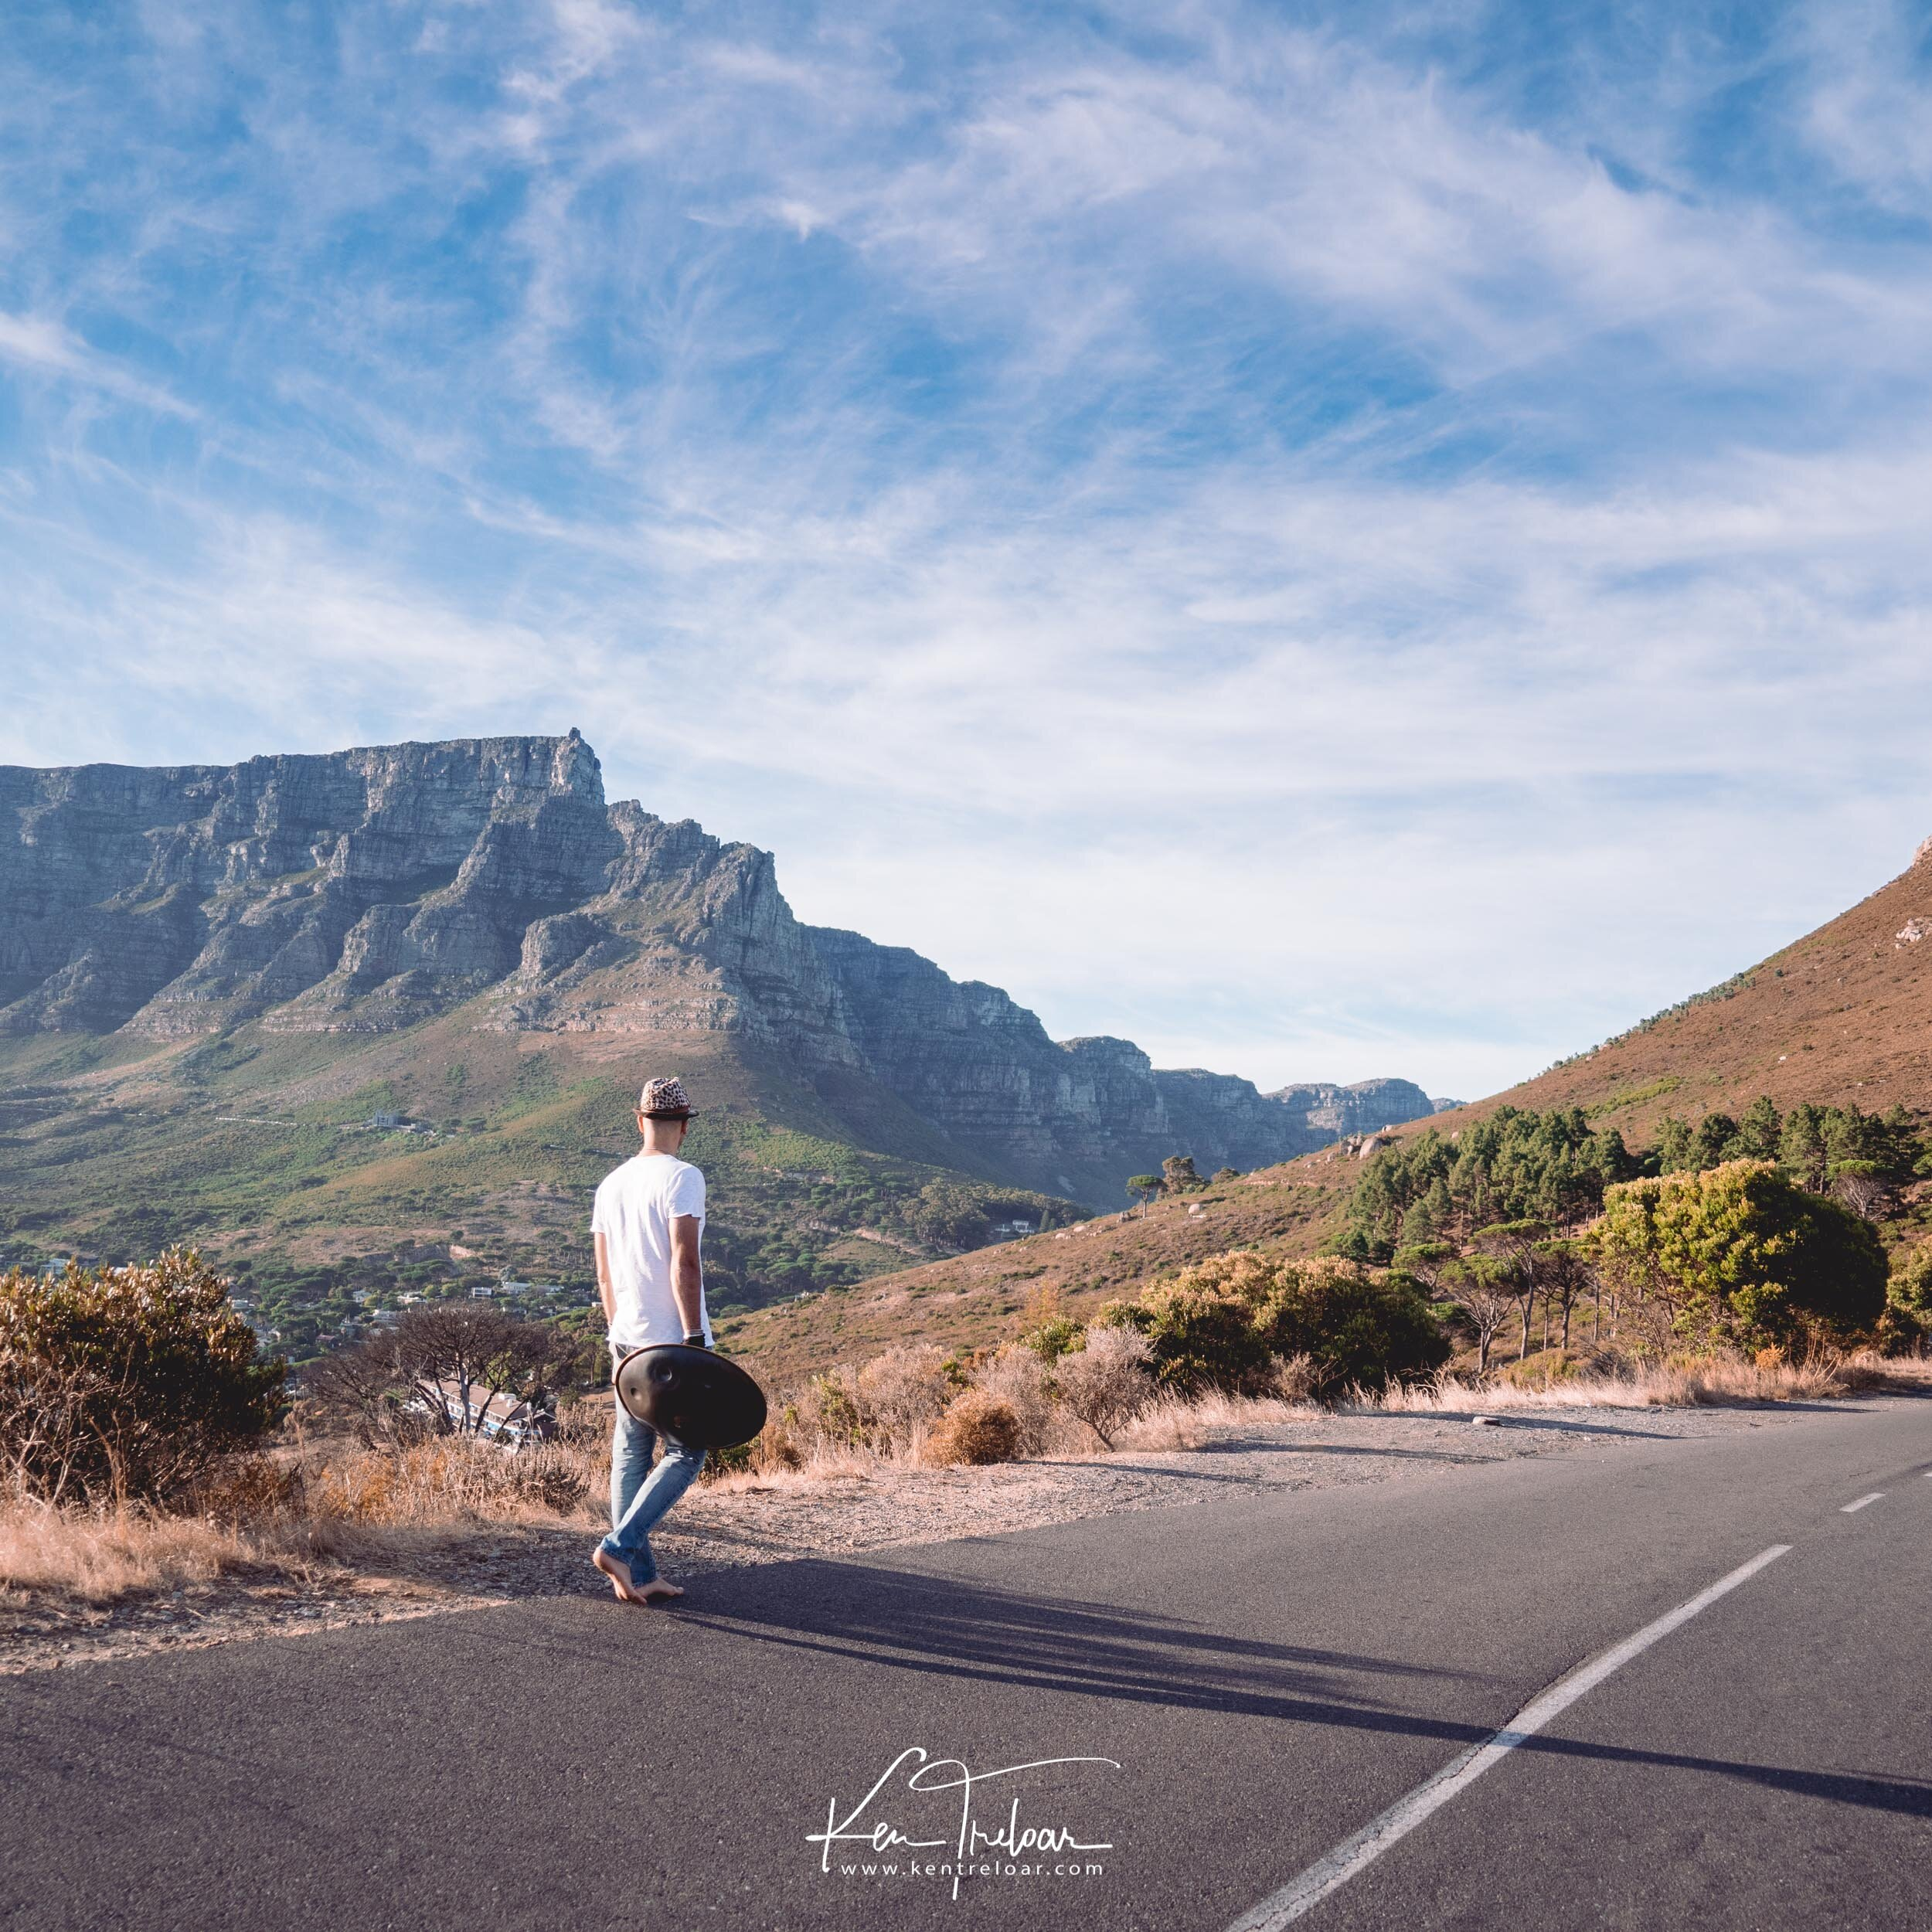 Marco Selvaggio - Signal Hill, Lions head, Table Mountain, Cape Town South Africa - Image by Ken Treloar Photography 2019-12.jpg